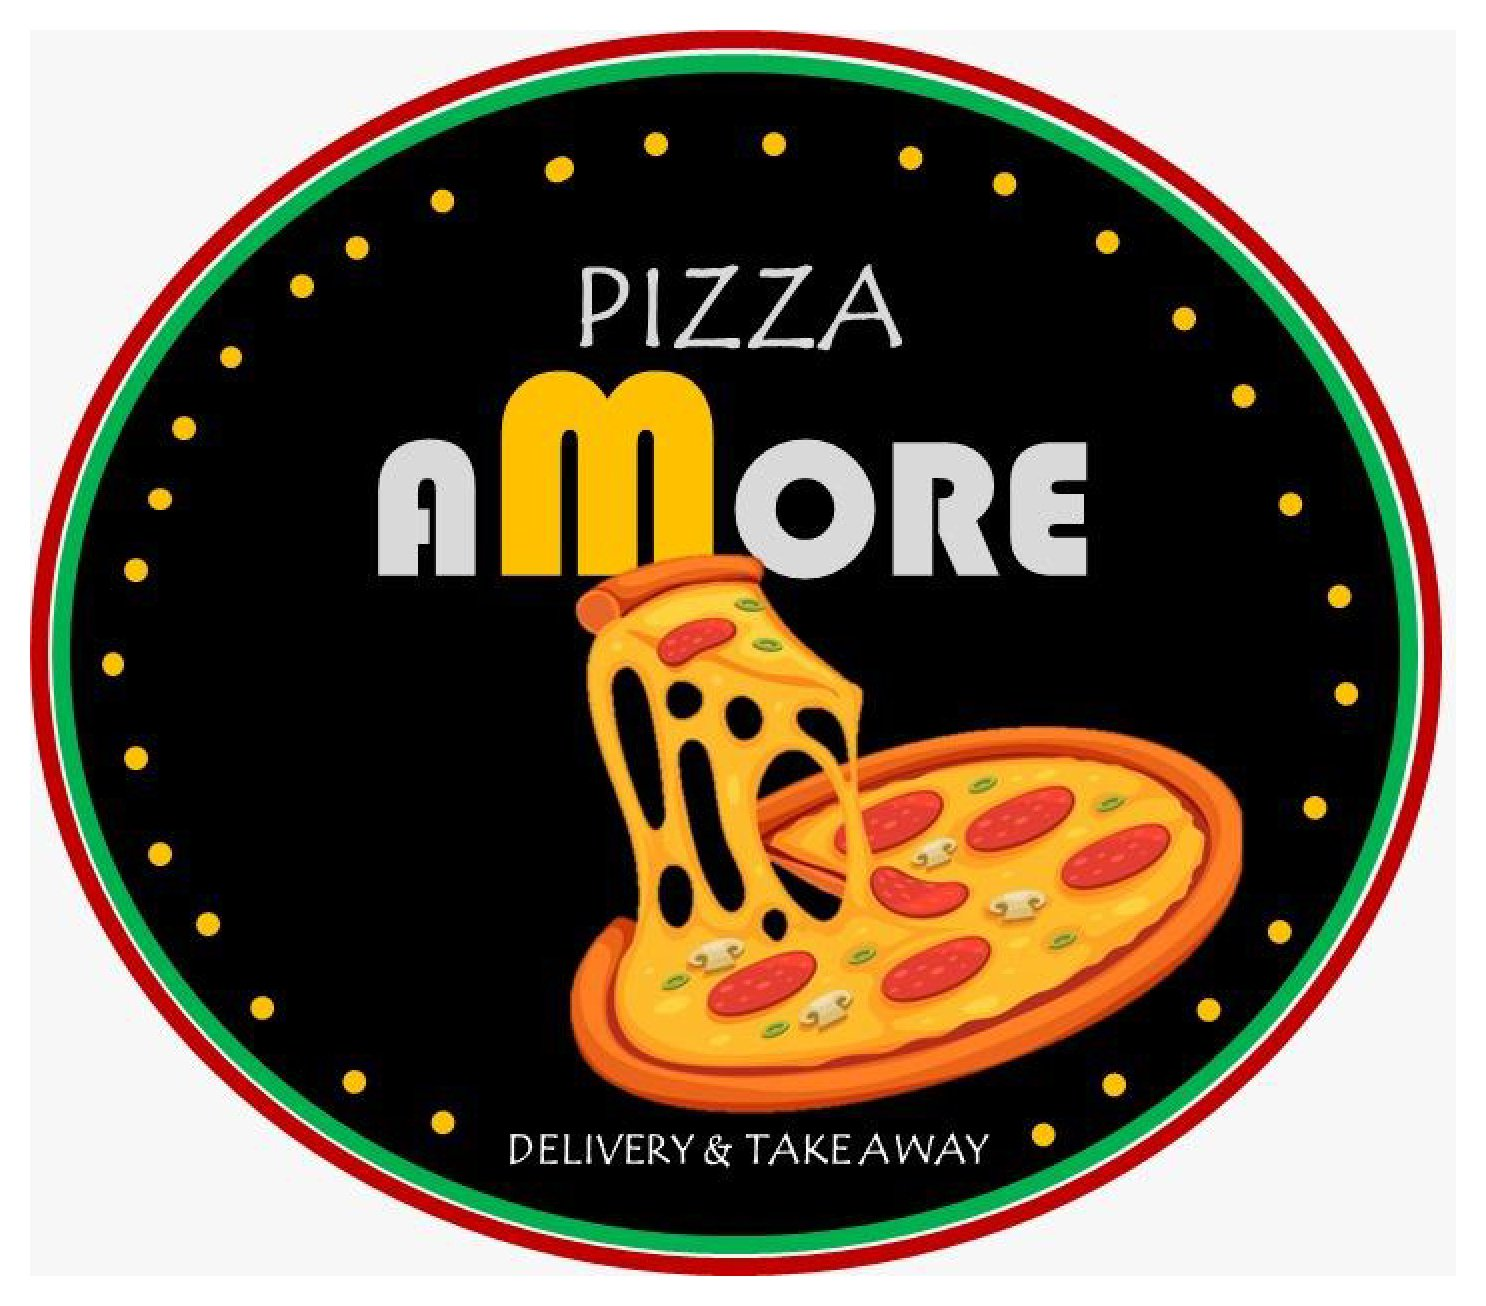 Pizza Amore Calle 21